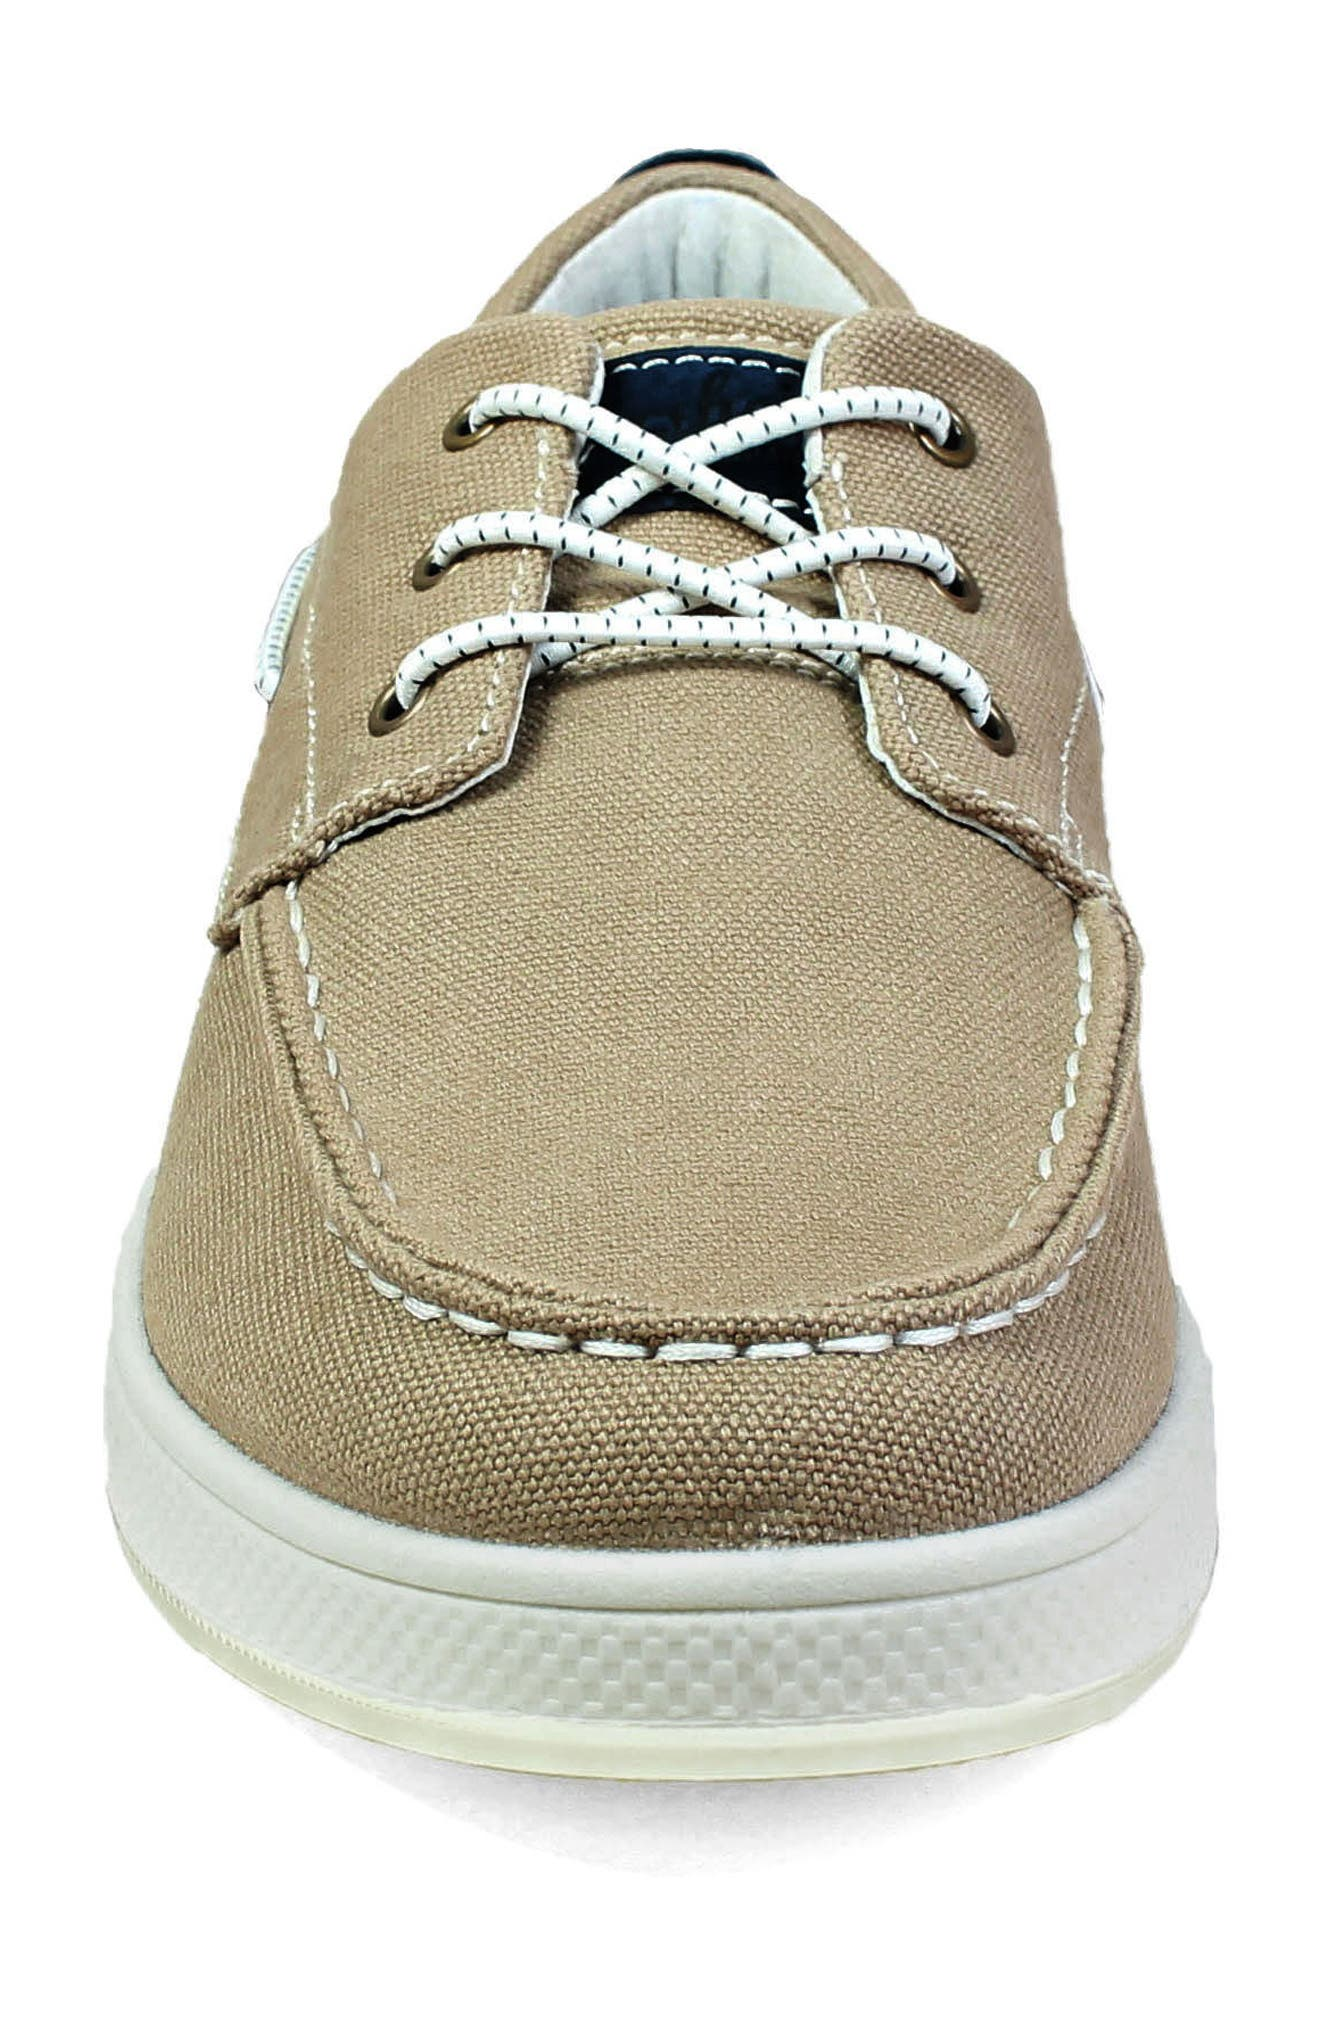 FLORSHEIM,                             Edge Boat Shoe,                             Alternate thumbnail 4, color,                             KHAKI CANVAS